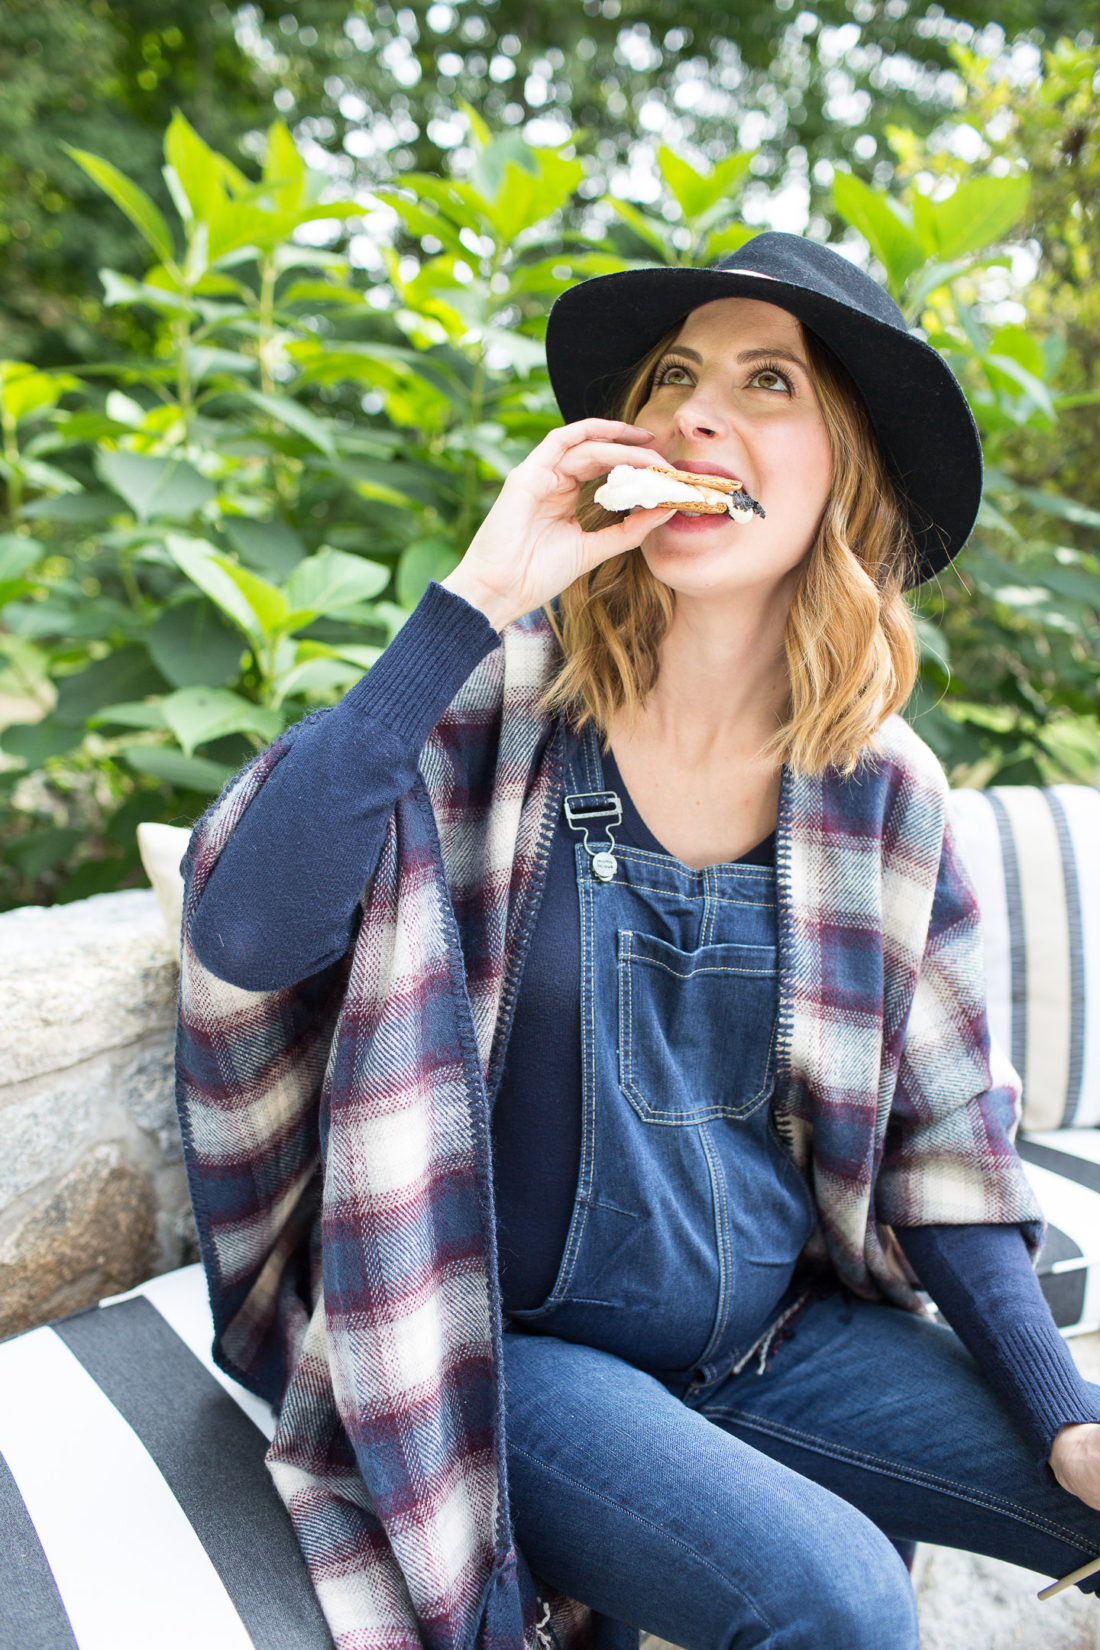 Eva Amurri Martino of lifestyle and motherhood blog Happily Eva After biting in to a S'more at her fire pit while wearing a plaid poncho and navy blue felt hat at 38 weeks pregnant